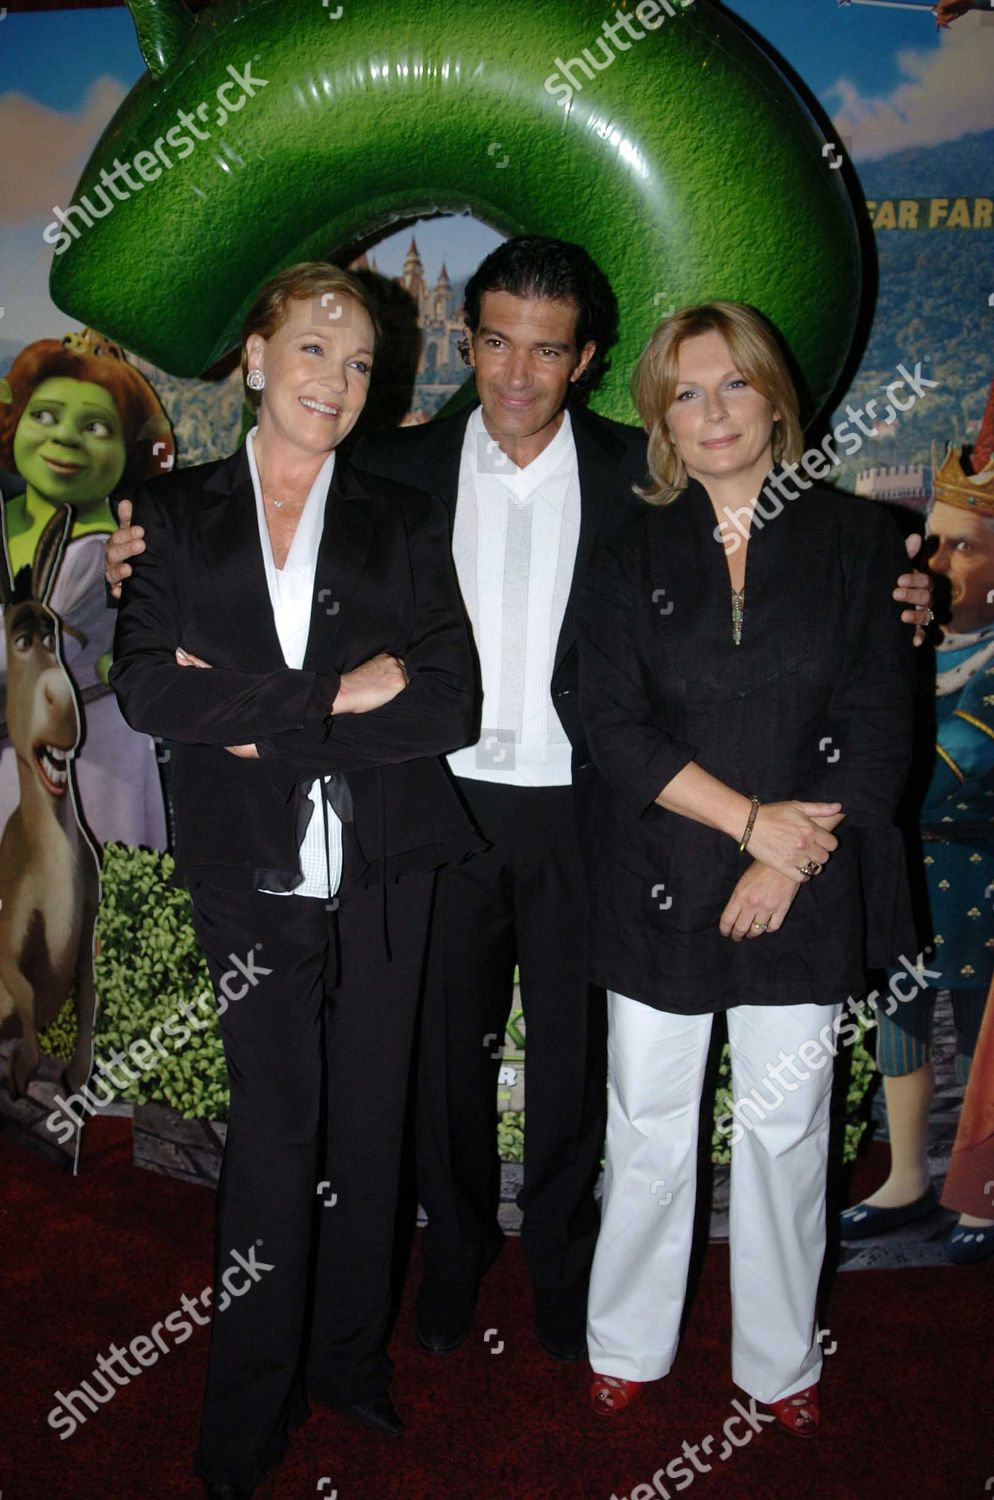 Uk Premiere Shrek 2 Empire Leicester Square Editorial Stock Photo Stock Image Shutterstock